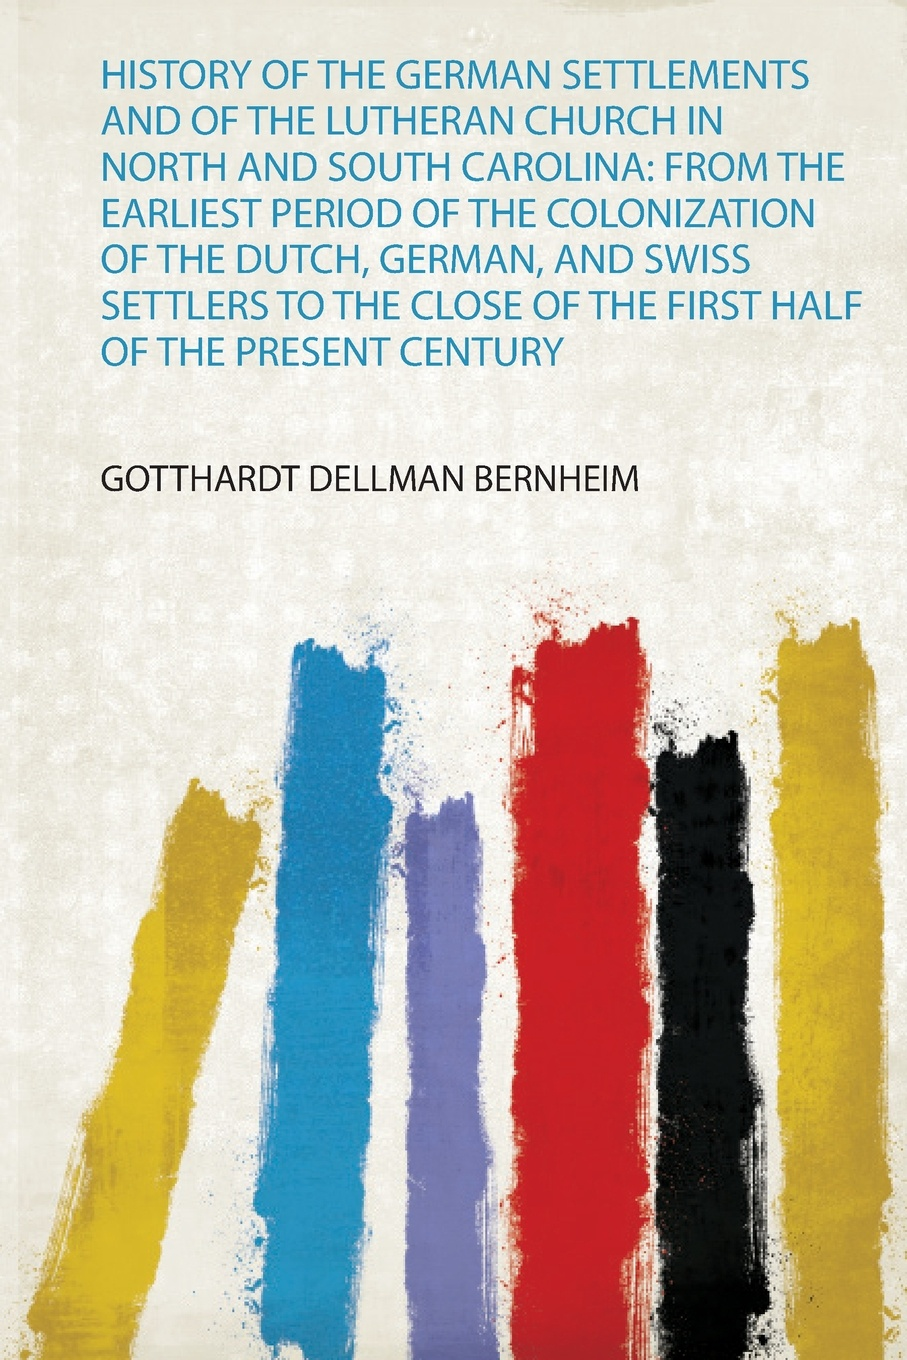 History of the German Settlements and of the Lutheran Church in North and South Carolina. from the Earliest Period of the Colonization of the Dutch, German, and Swiss Settlers to the Close of the First Half of the Present Century